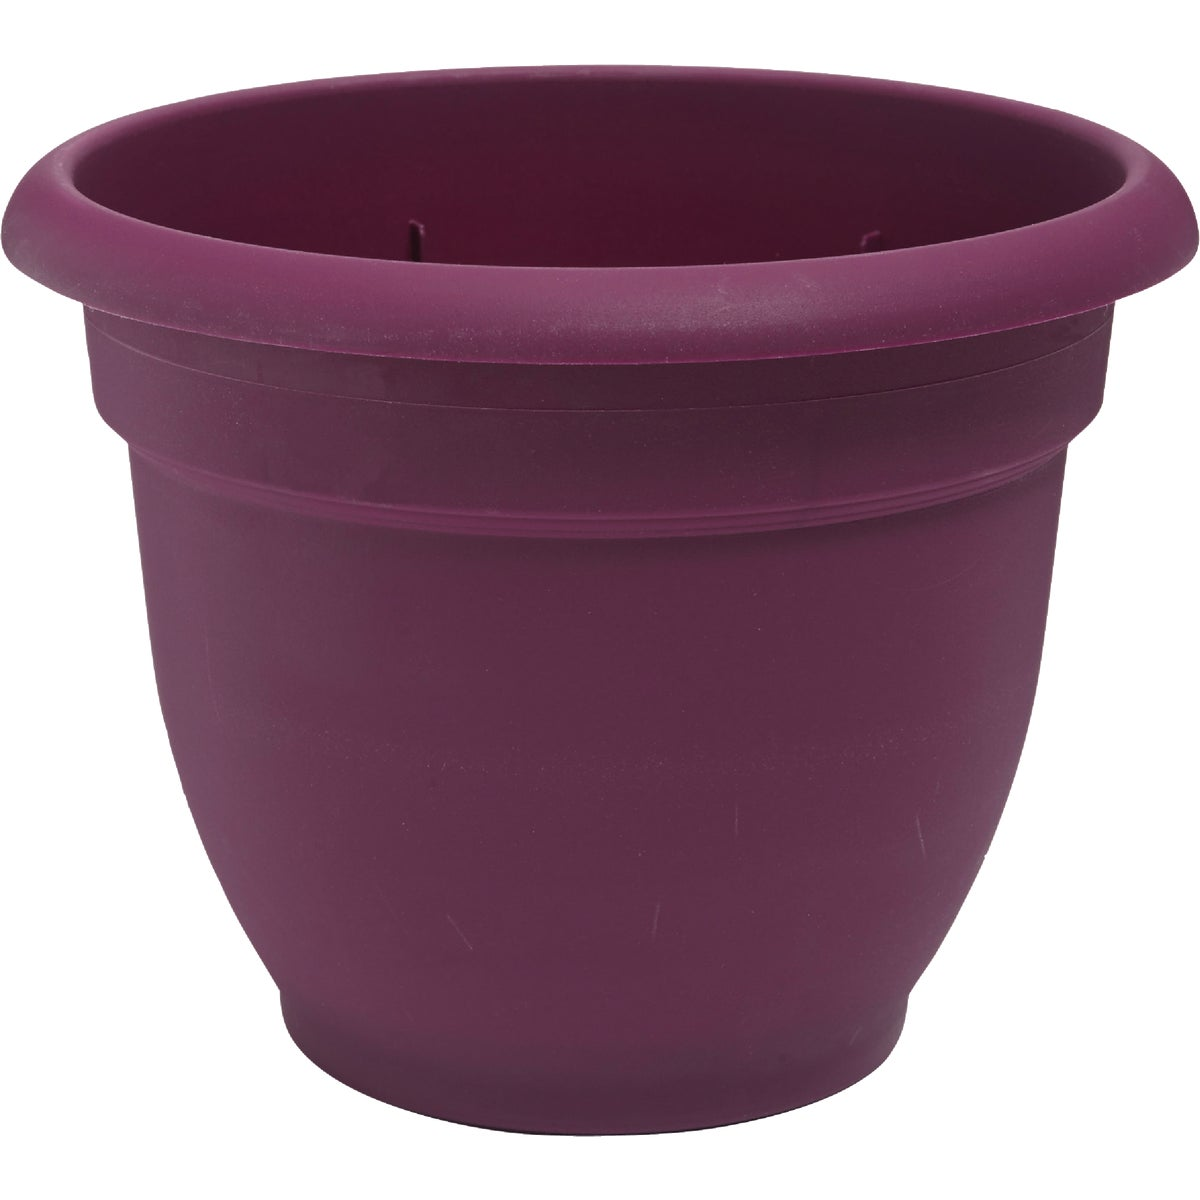 "12"" FUCHSIA ARIANA POT - 465123-1001 by Fiskars Brands Inc"